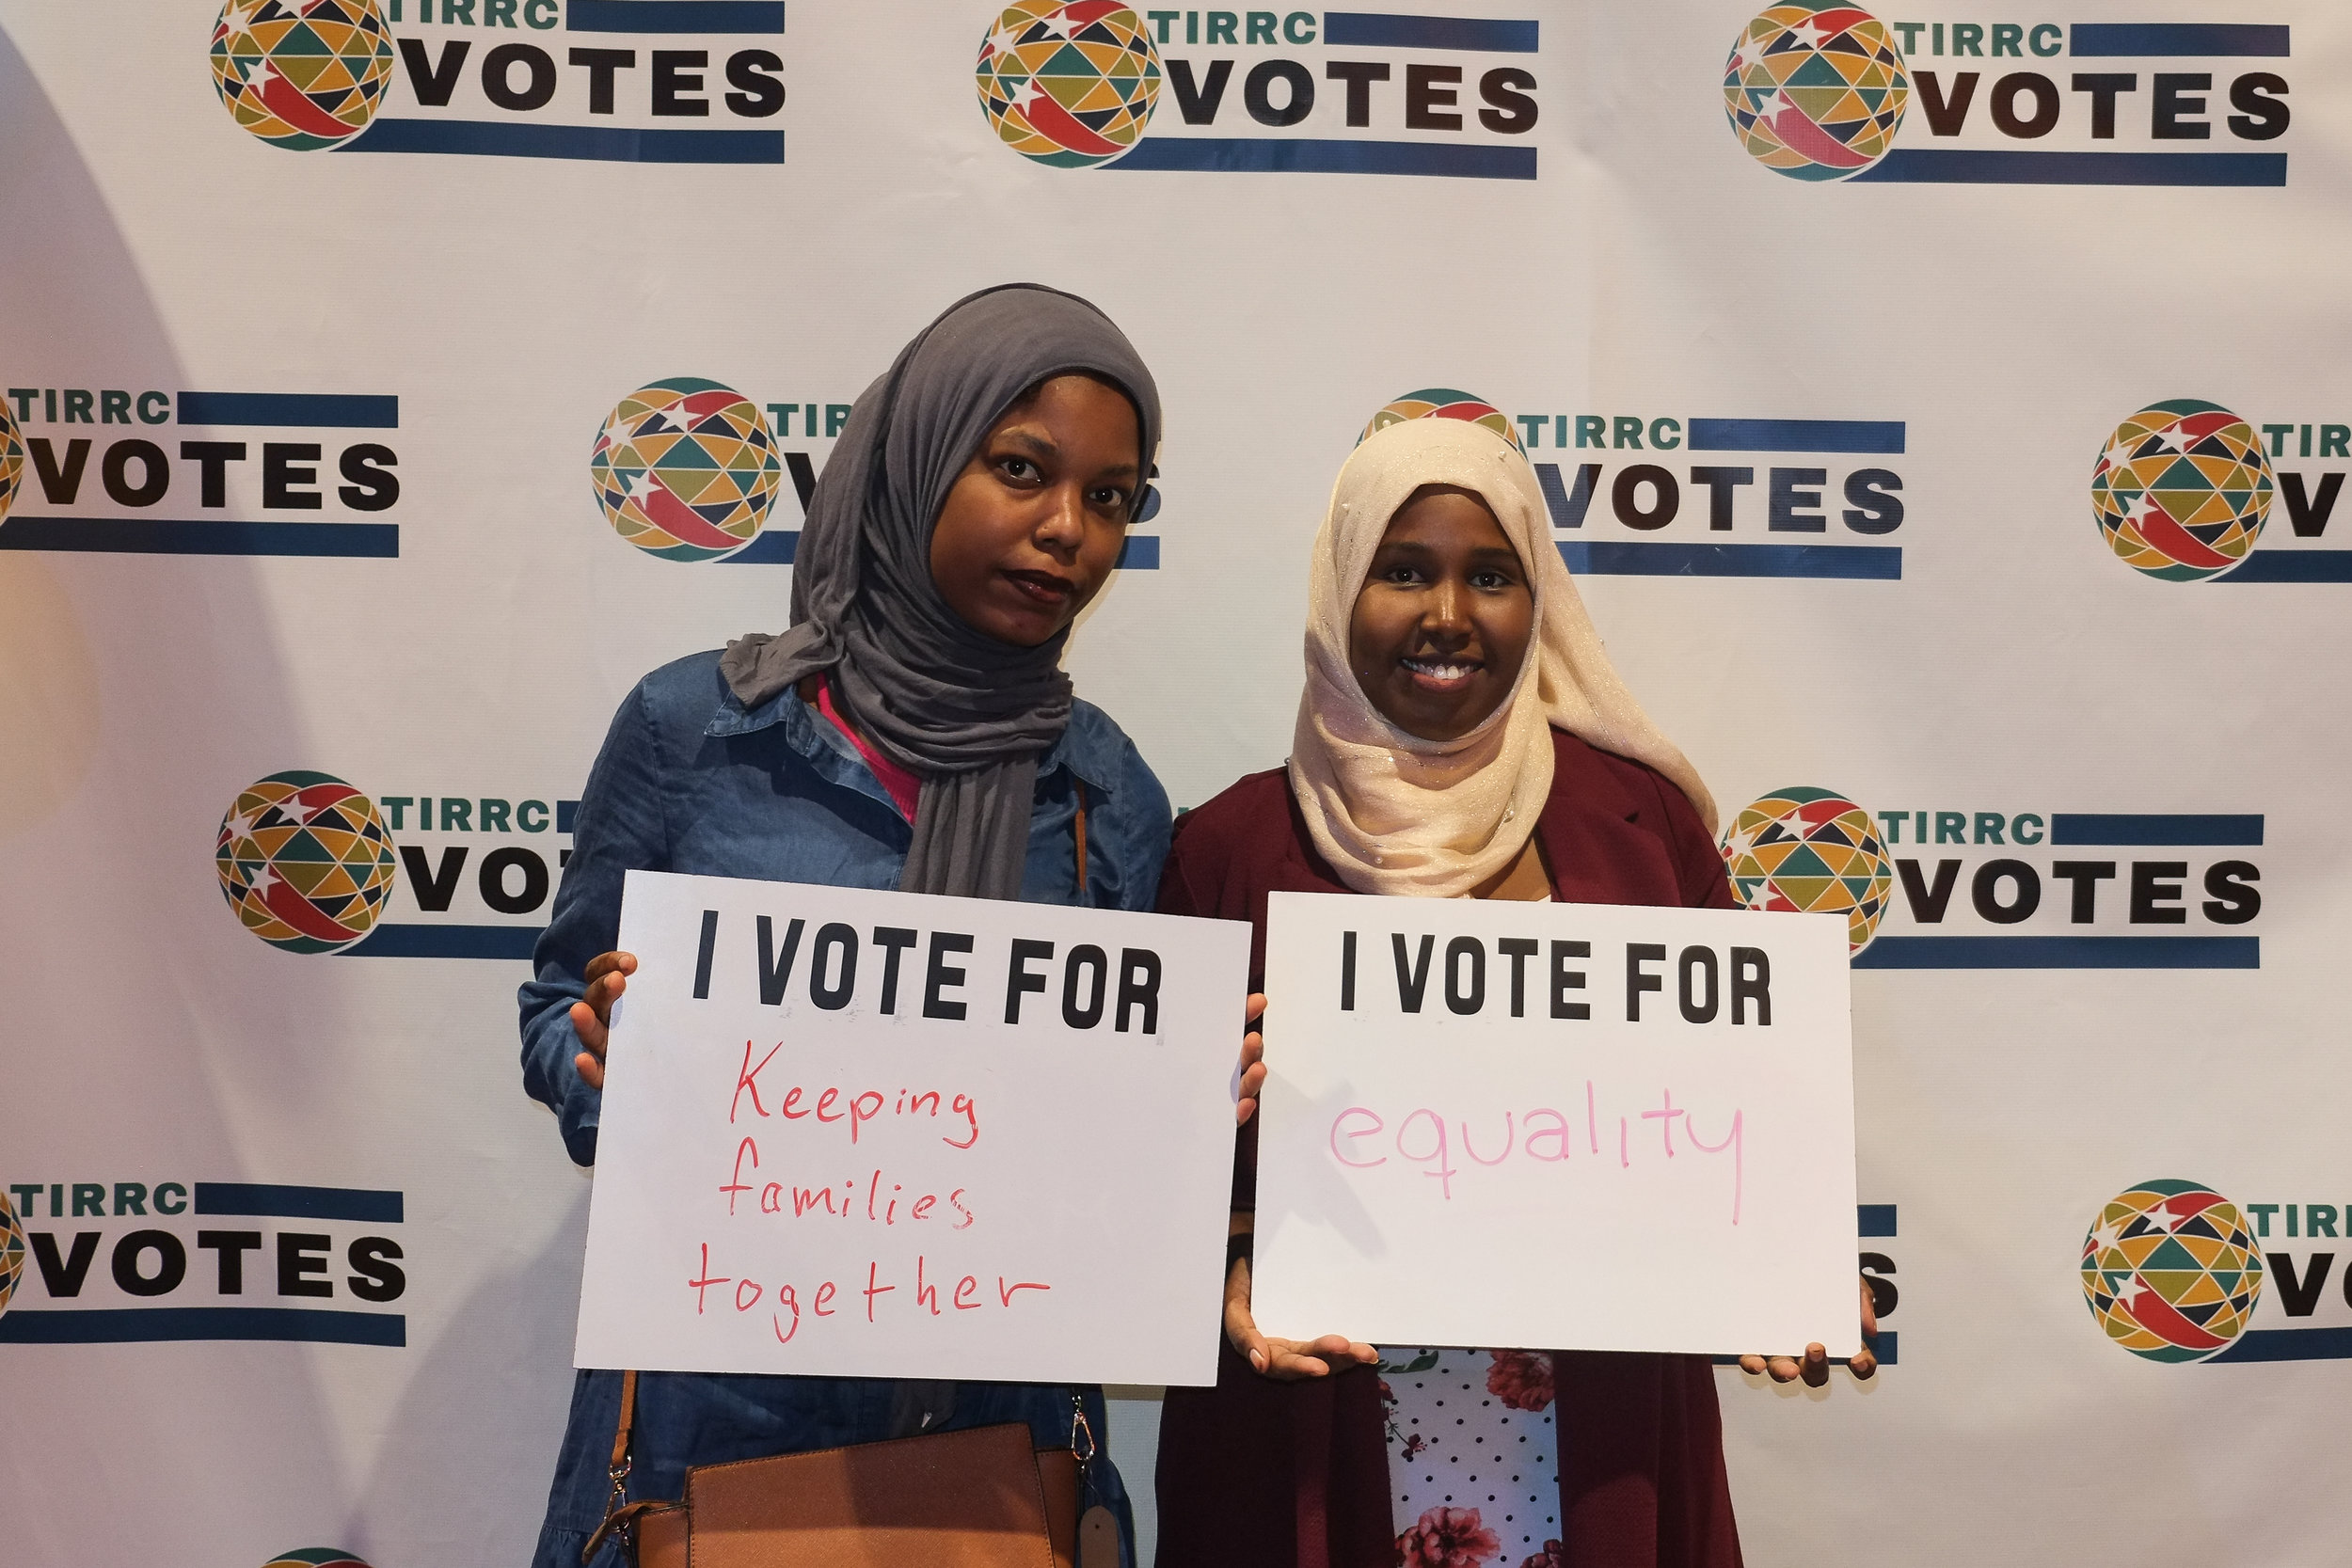 TIRRCVotes-PhotoBooth-54.jpg